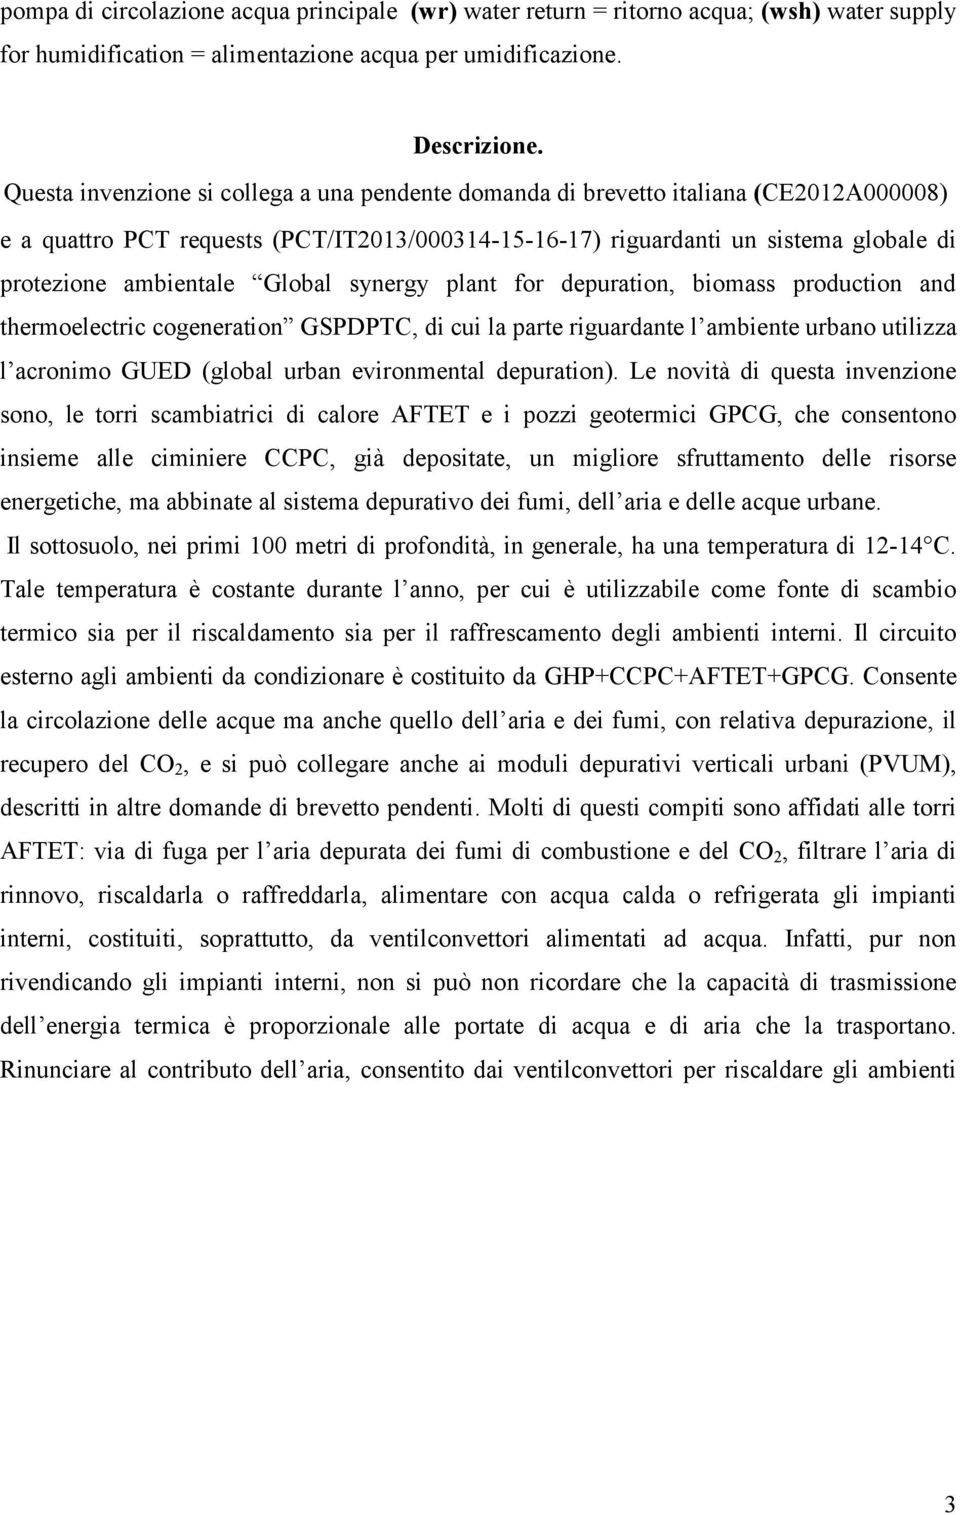 Global synergy plant for depuration, biomass production and thermoelectric cogeneration GSPDPTC, di cui la parte riguardante l ambiente urbano utilizza l acronimo GUED (global urban evironmental